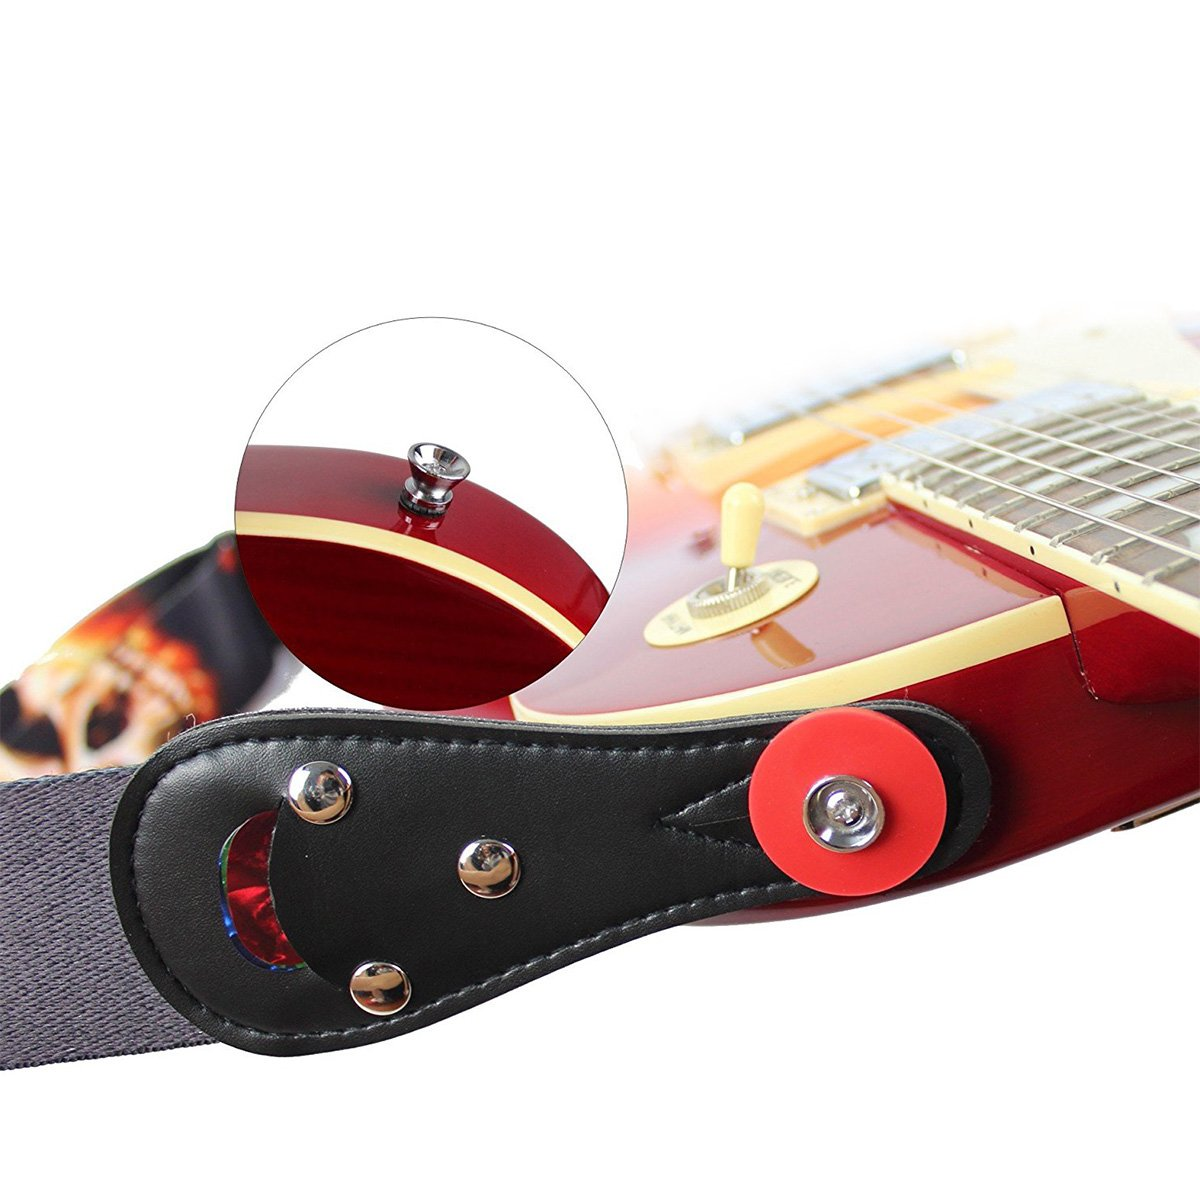 Guitar Strap Locks Silicone Anti skid Electric Guitar Savers Protector Strap Blocks Musical Instrument Accessories (4pcs, Black/Red) Suces Suces-0516